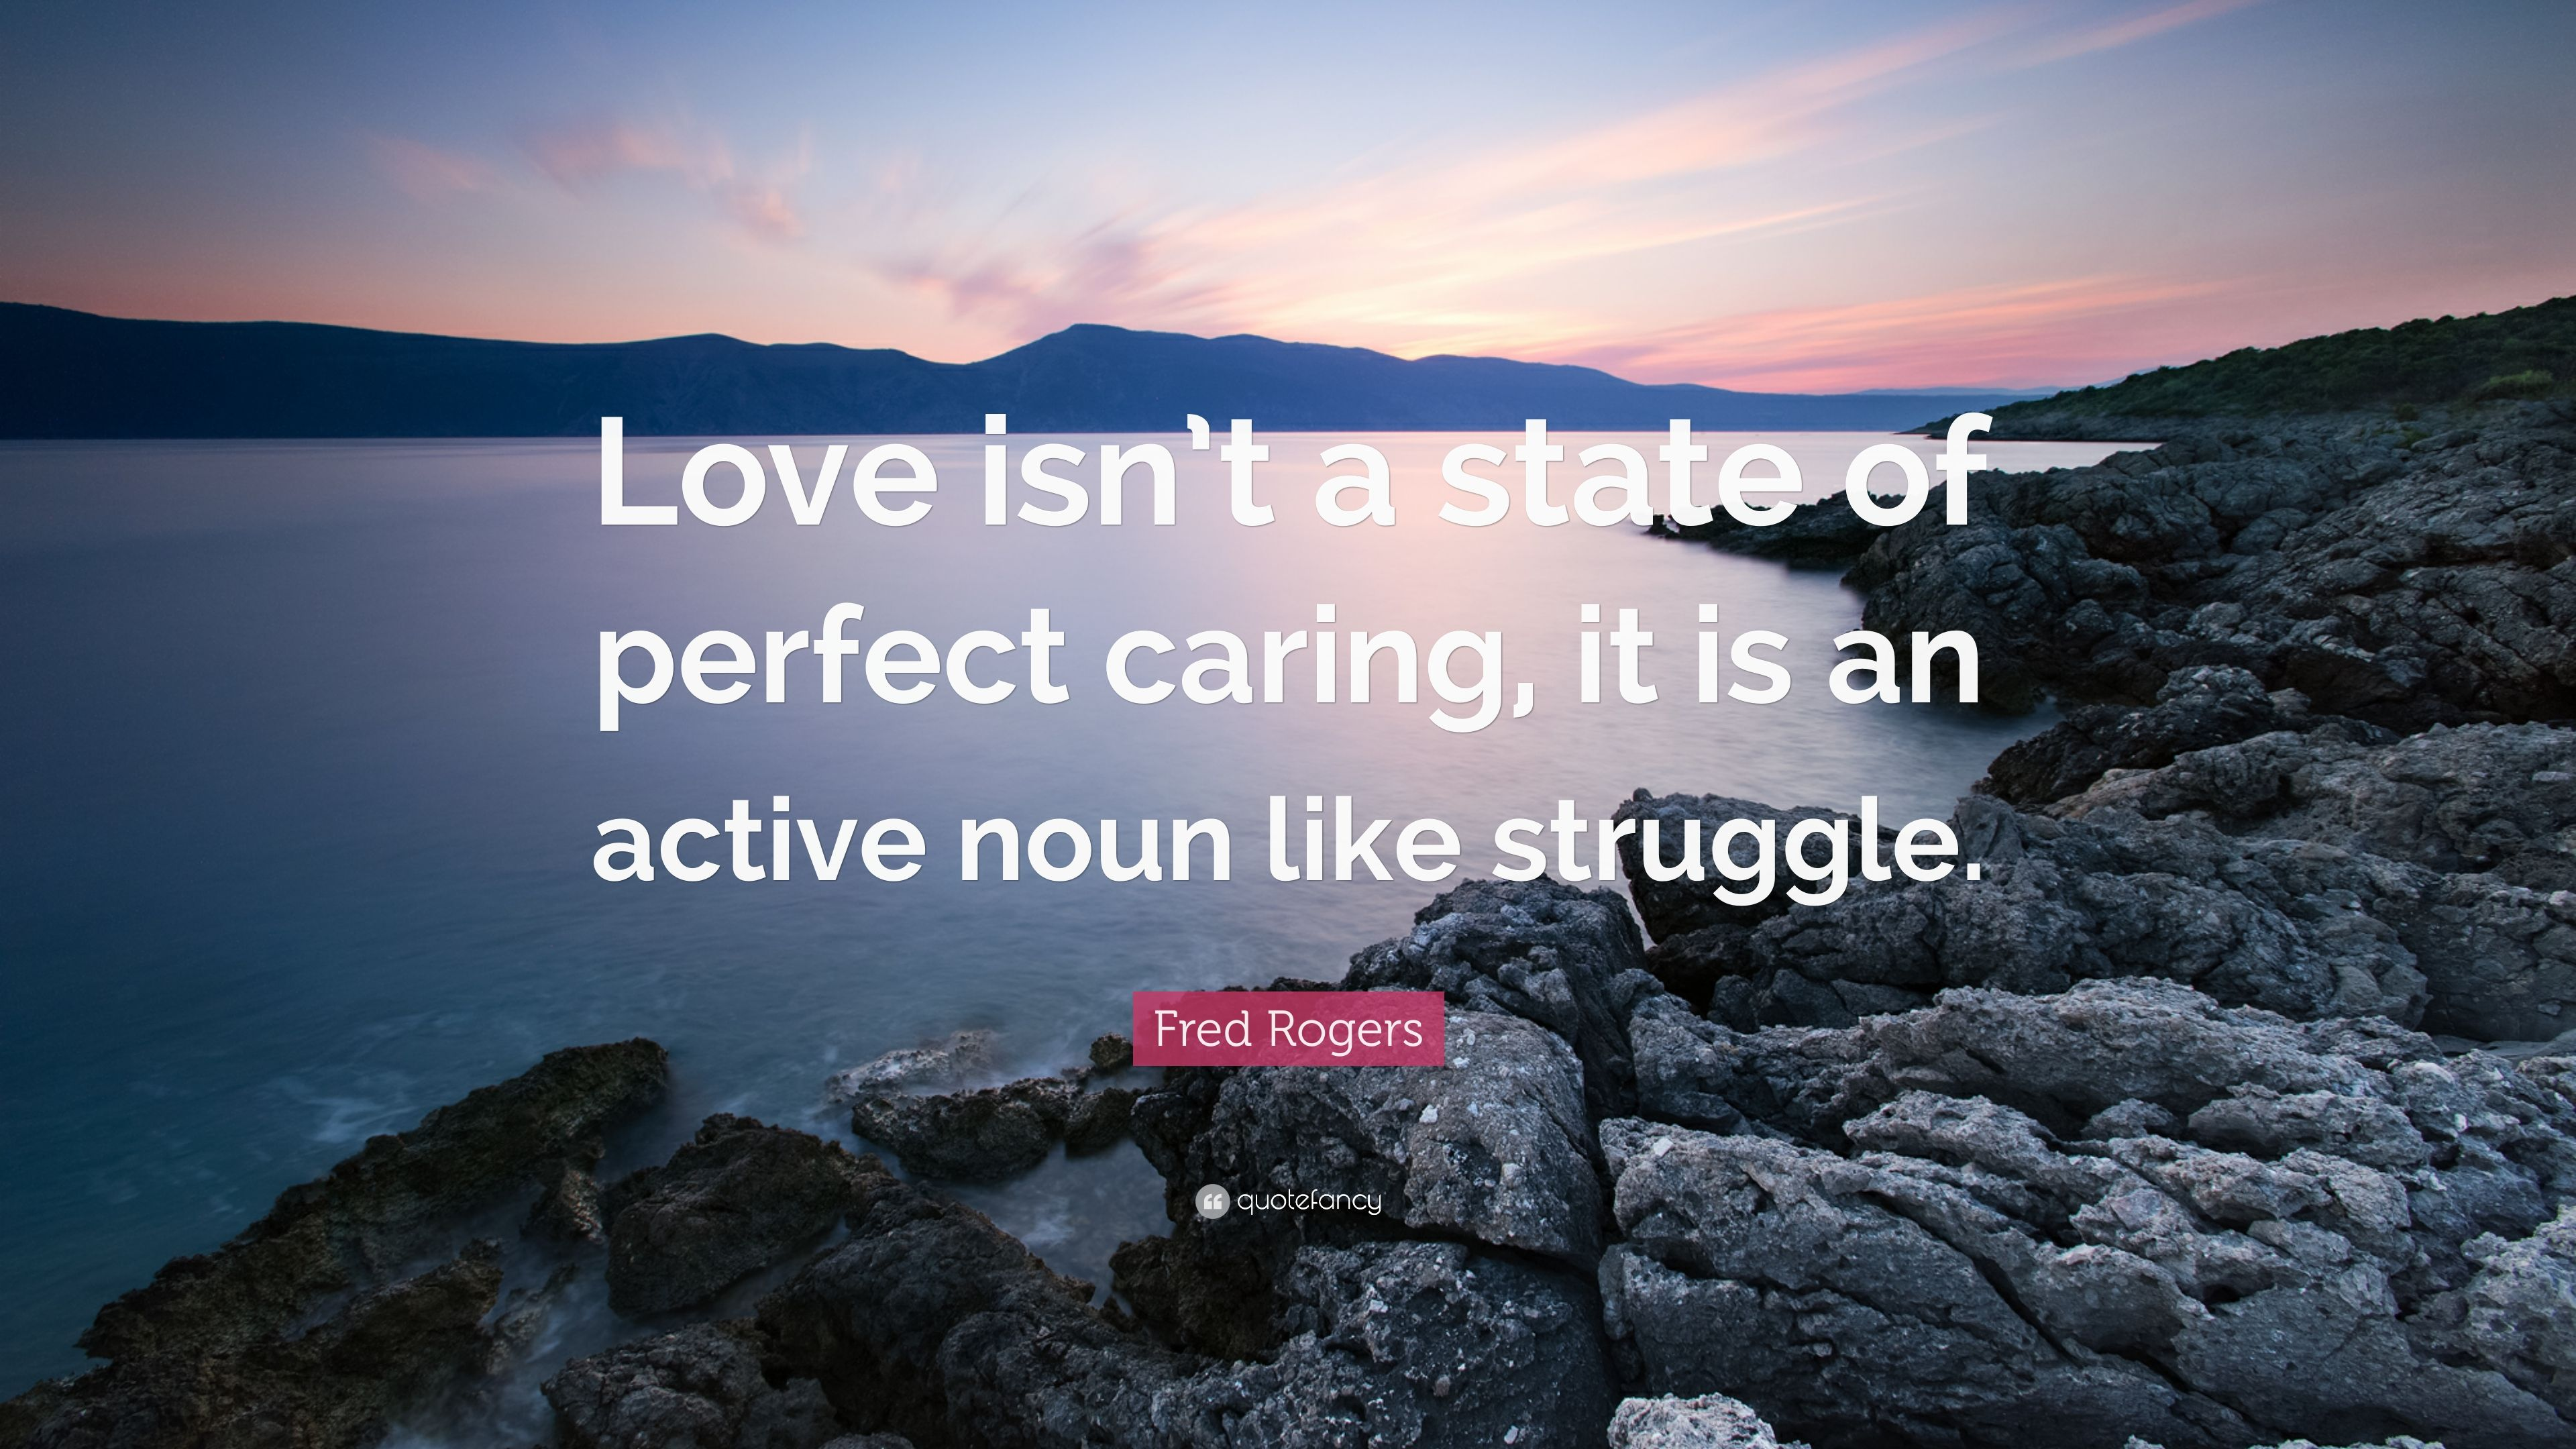 Fred Rogers Quote Love Isn T A State Of Perfect Caring It Is An Active Noun Like Struggle 10 Wallpapers Quotefancy